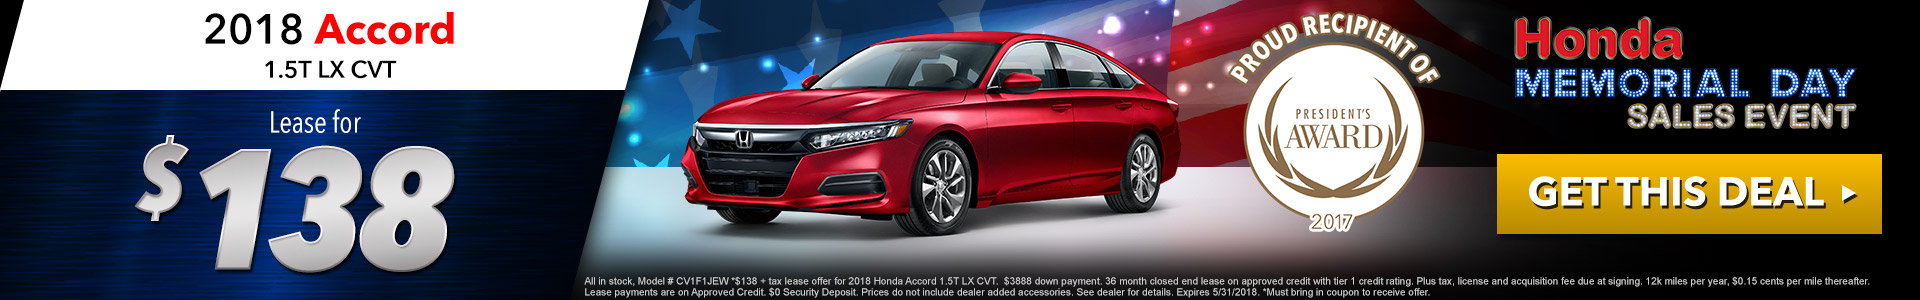 Honda Accord $138 Lease